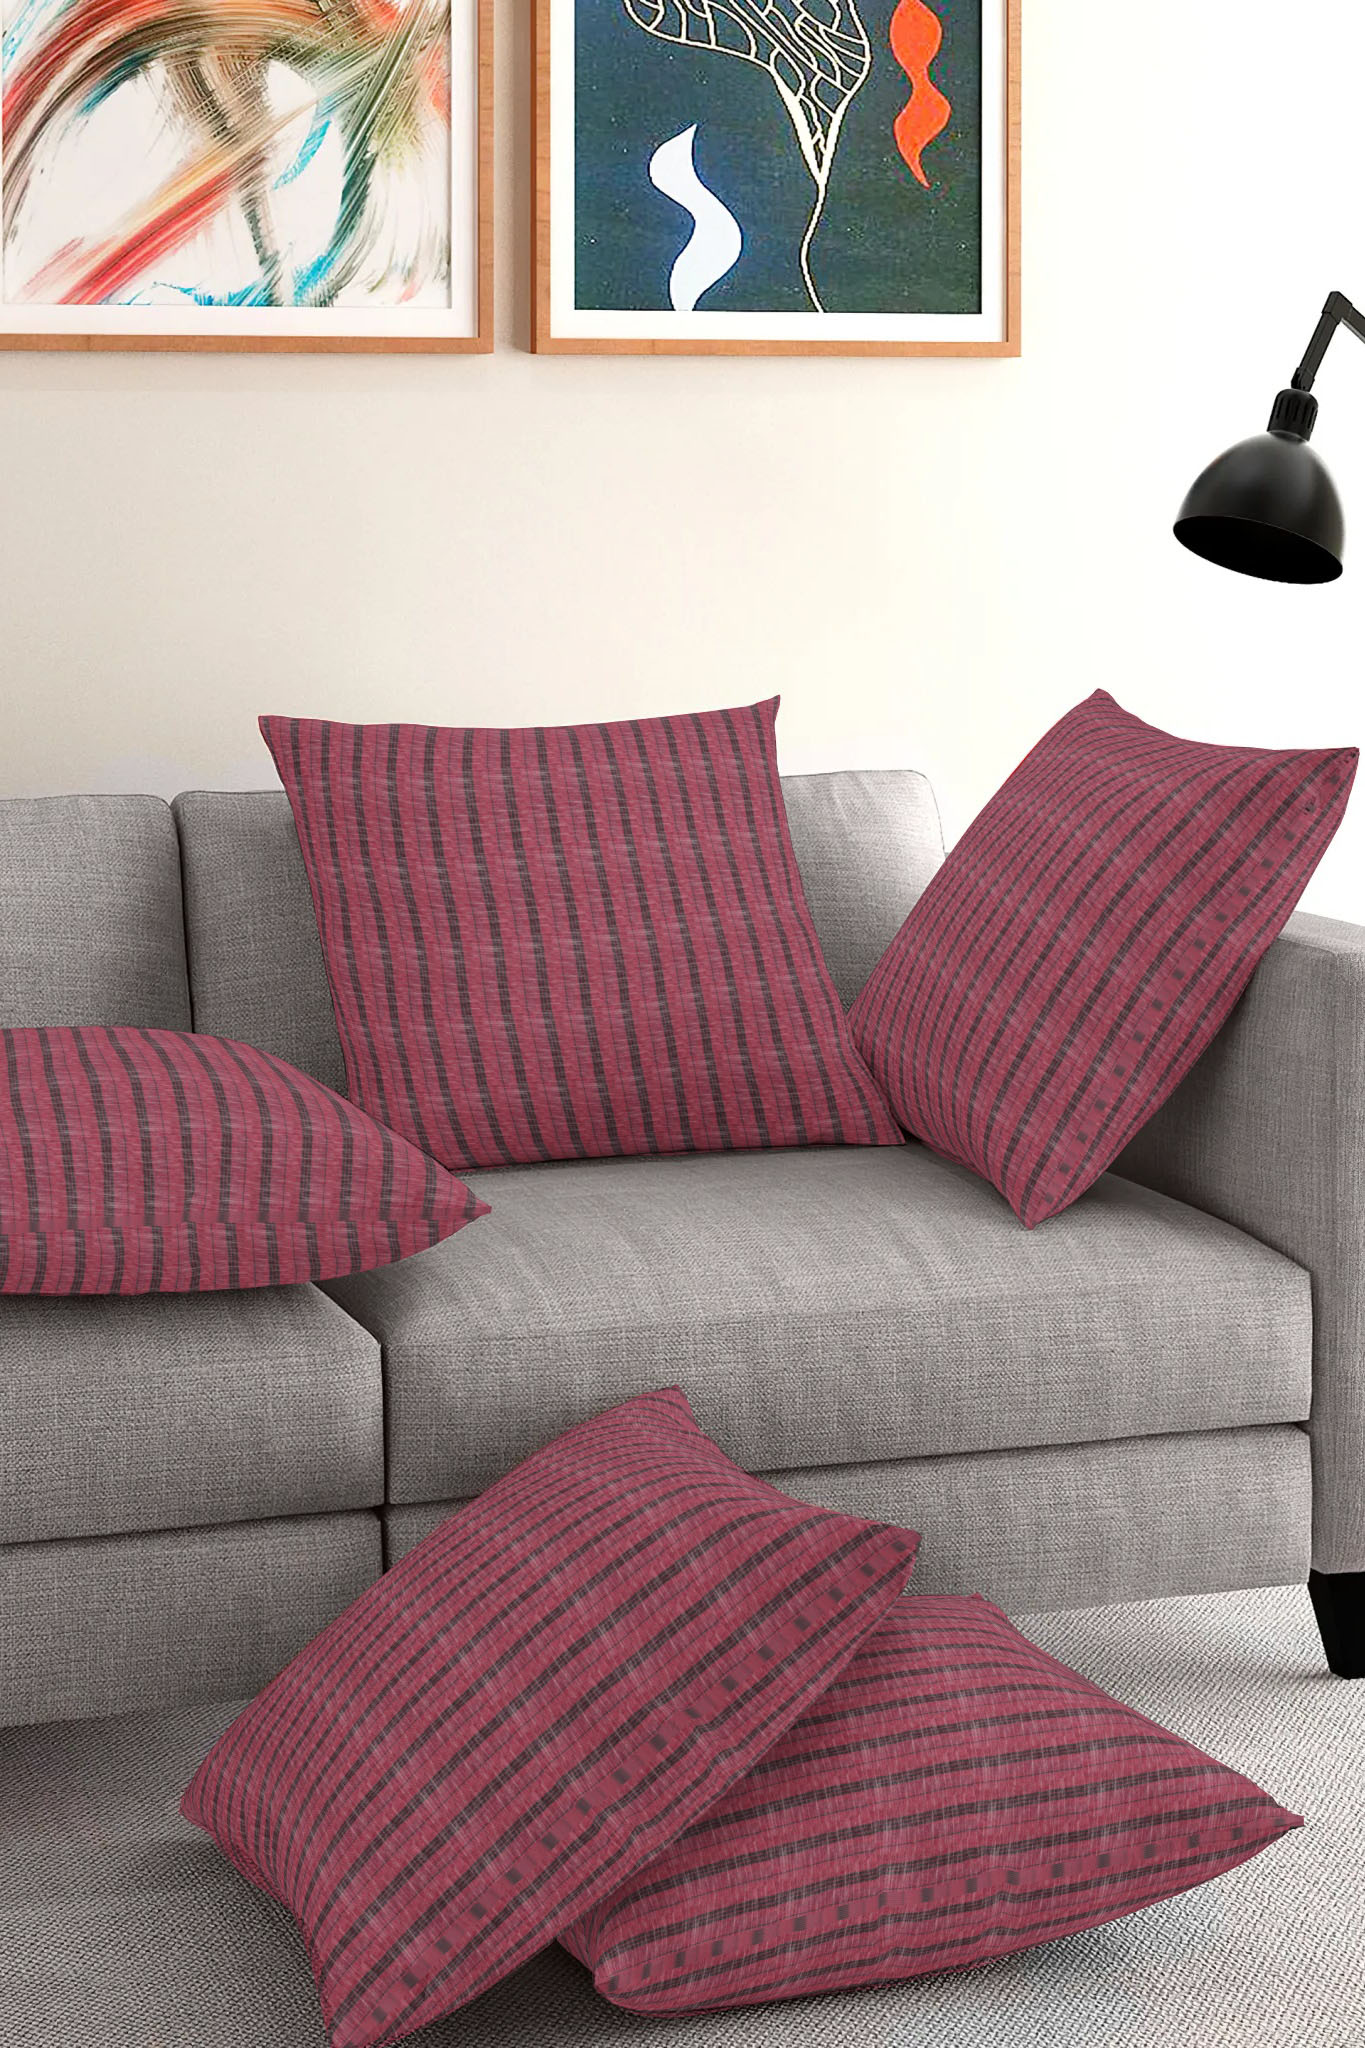 Set of 5-Pink Black Cotton Cushion Cover-35380-16x16 Inches